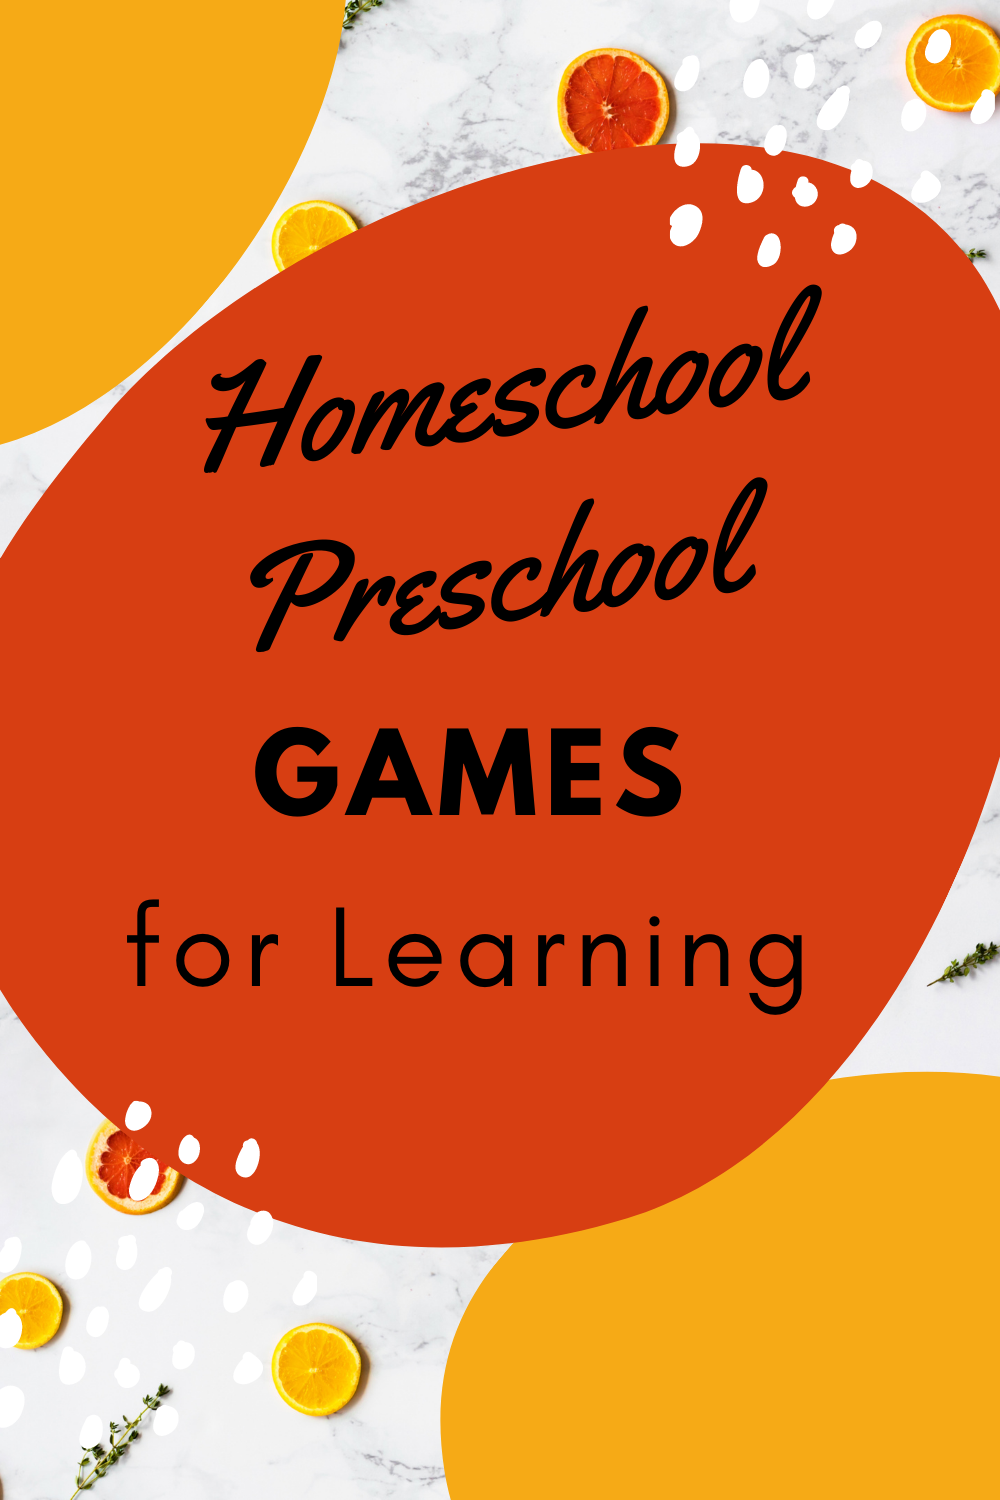 Homeschool Preschool Games for Learning